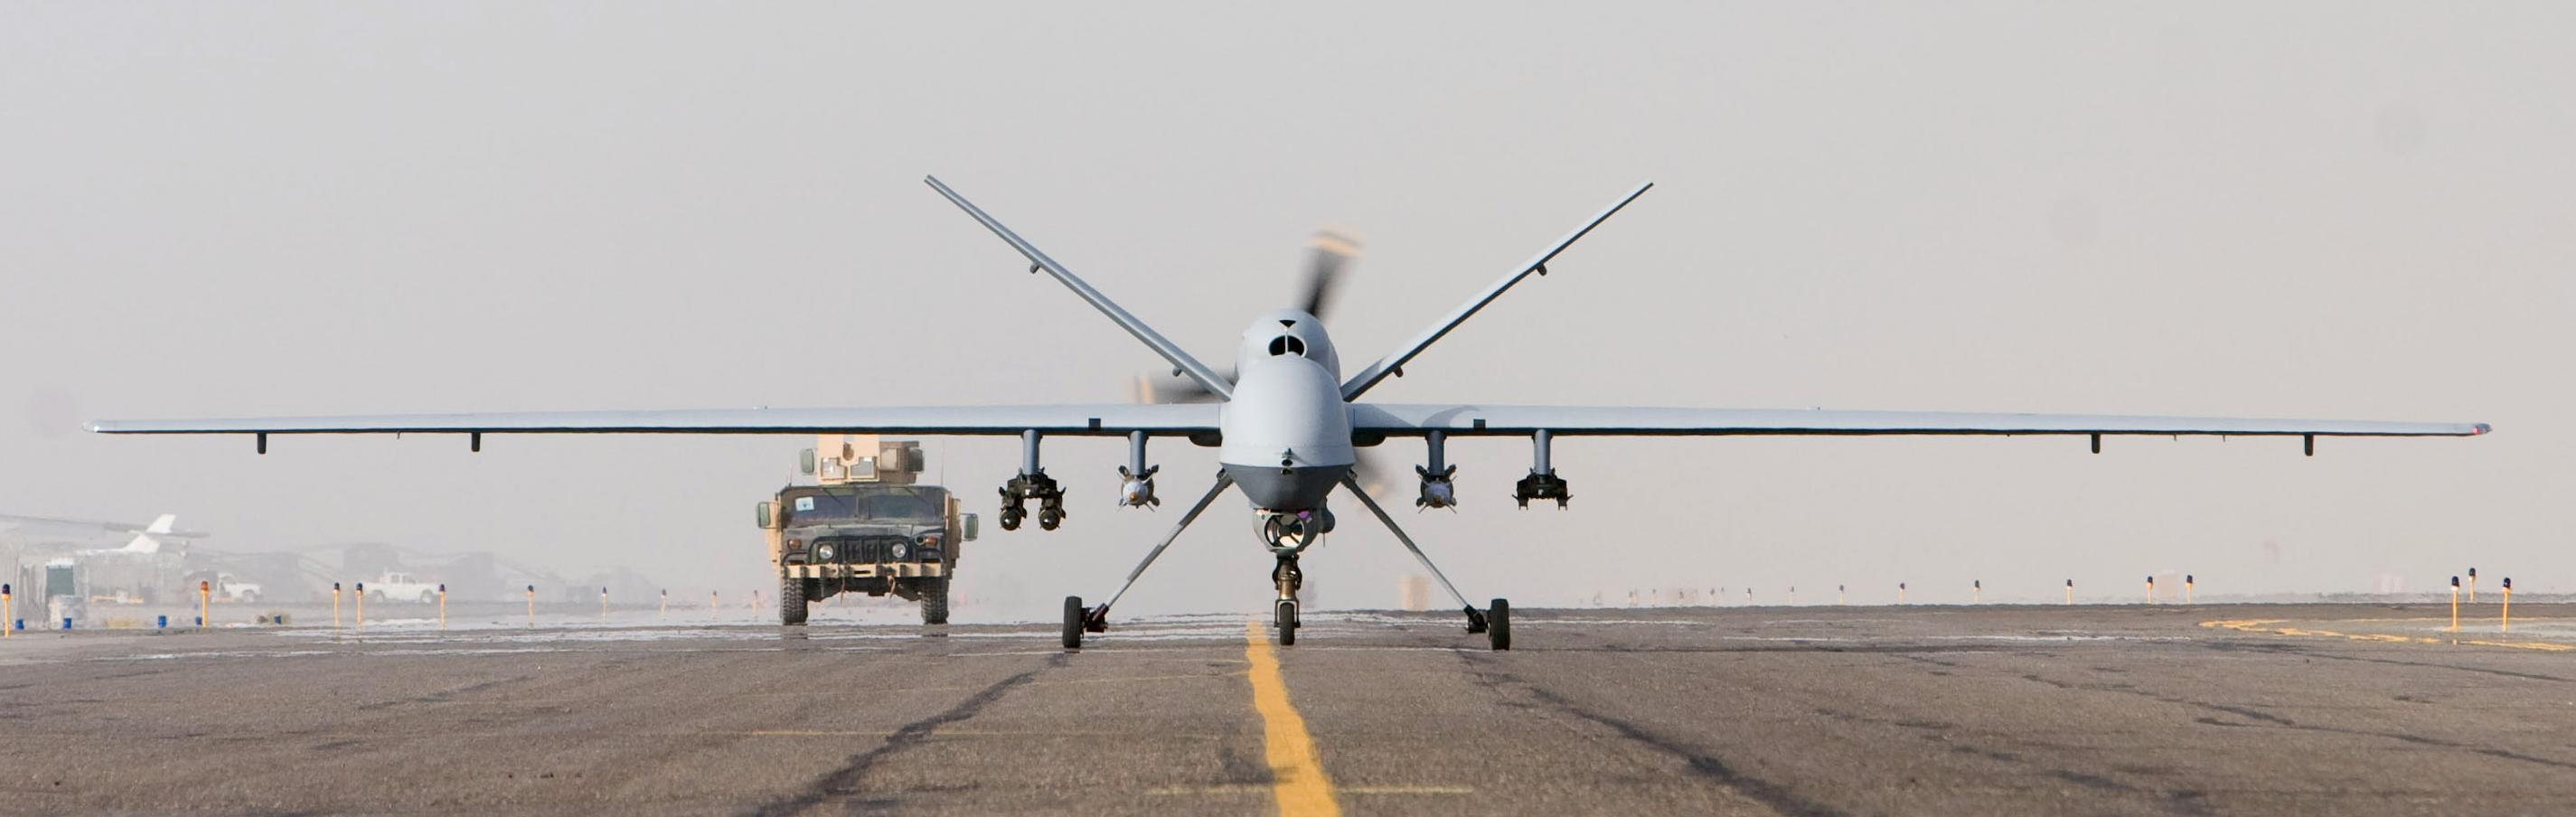 MQ 9 Afghanistan takeoff 1 Oct 07